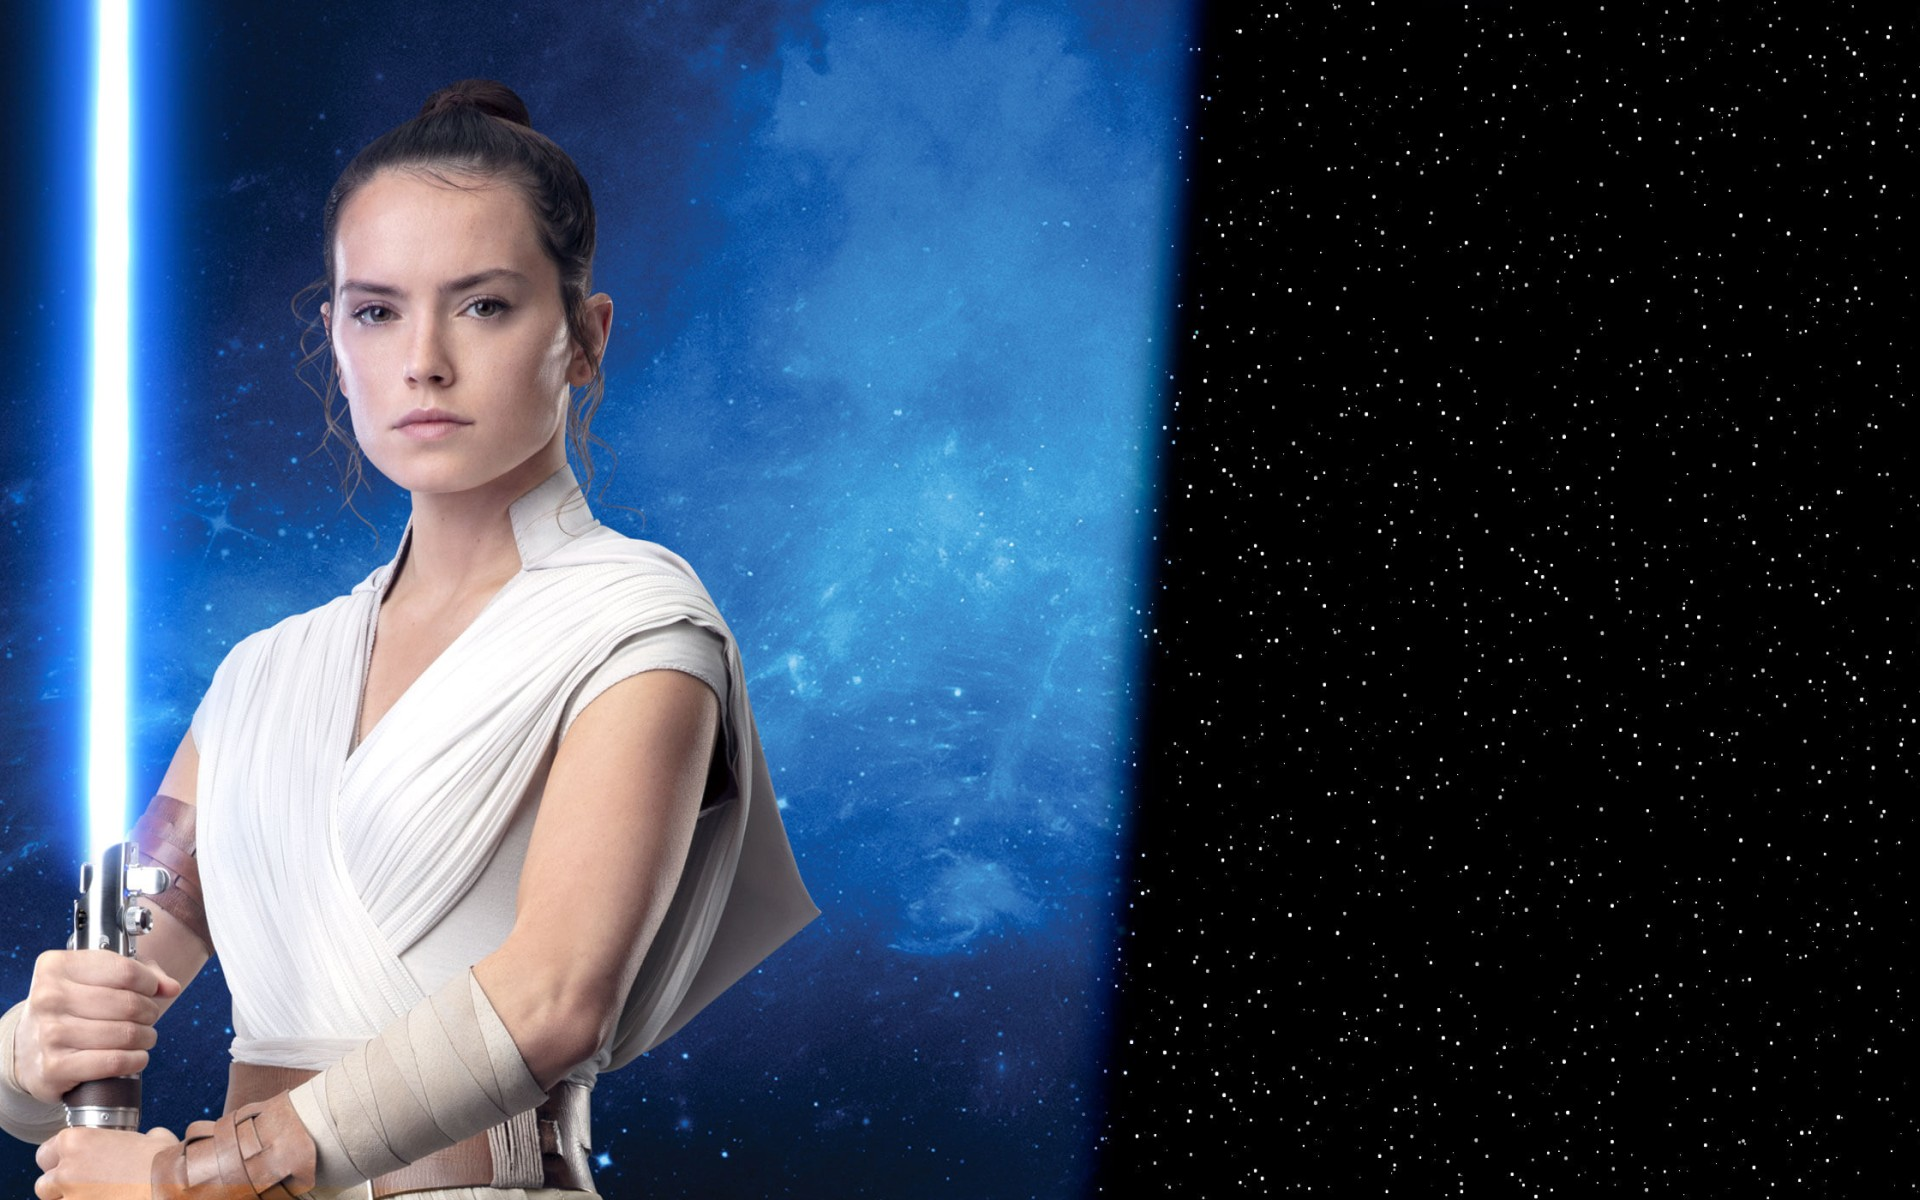 Star Wars The Rise Of Skywalker Poster Rey 1920x1200 Wallpaper The Hot Desktop Wallpapers And Backgrounds For Your Pc And Mobile